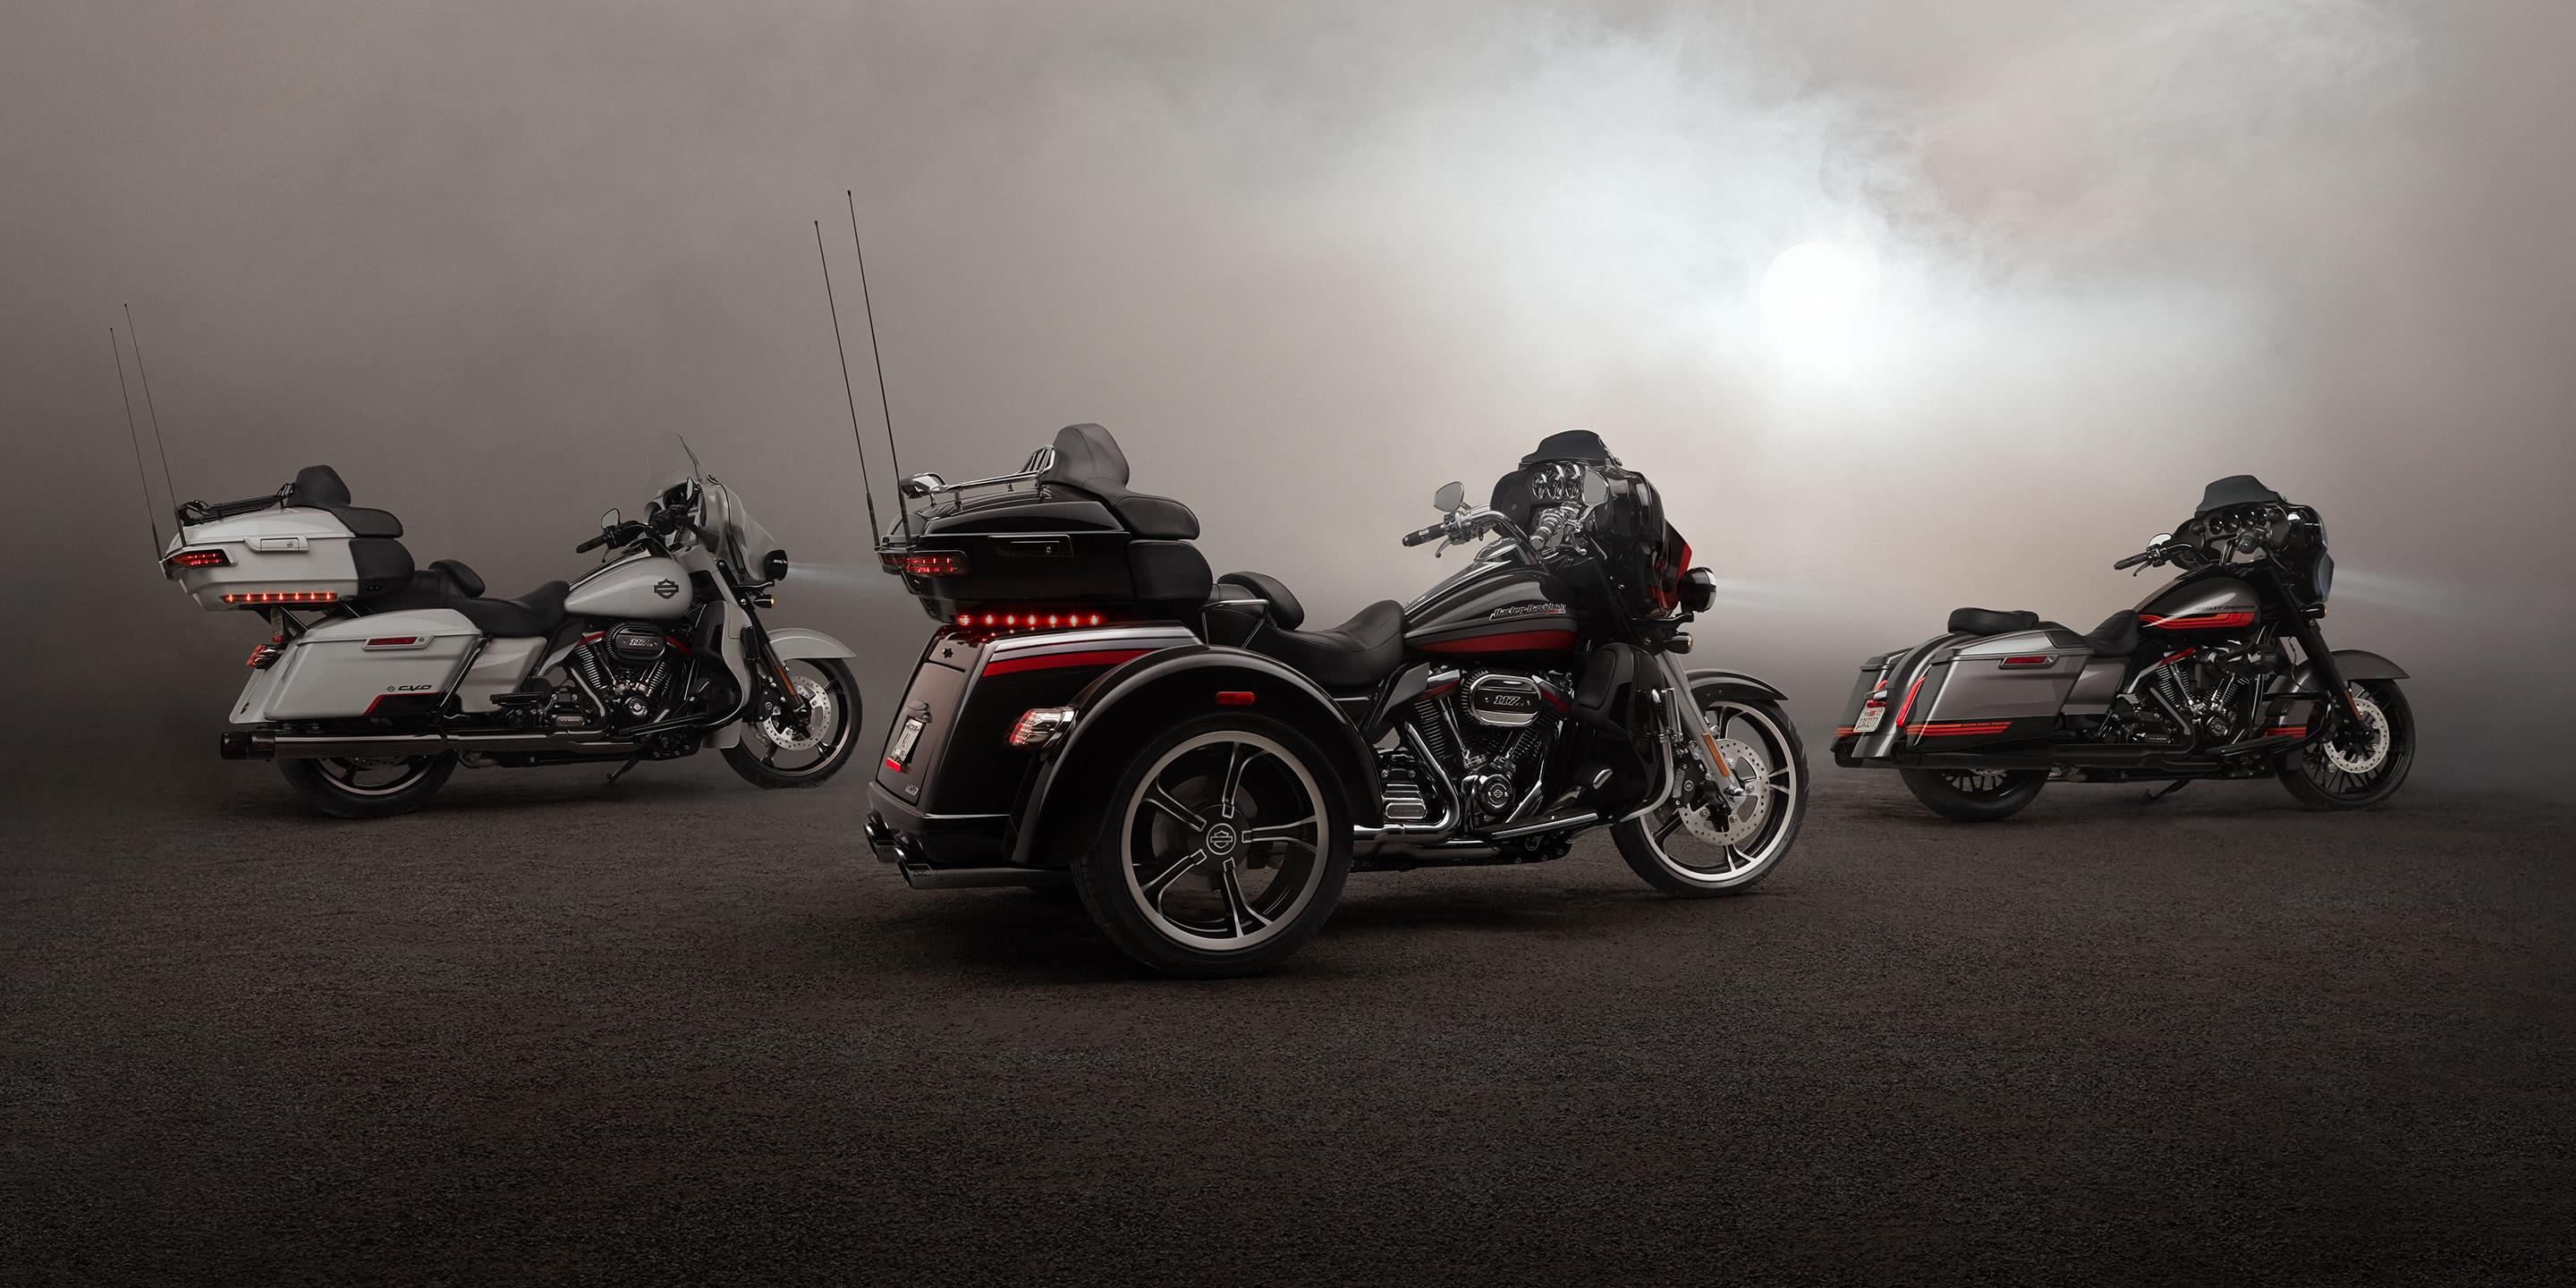 Harley Davidson X Resolution Wallpapers Iphone Xs